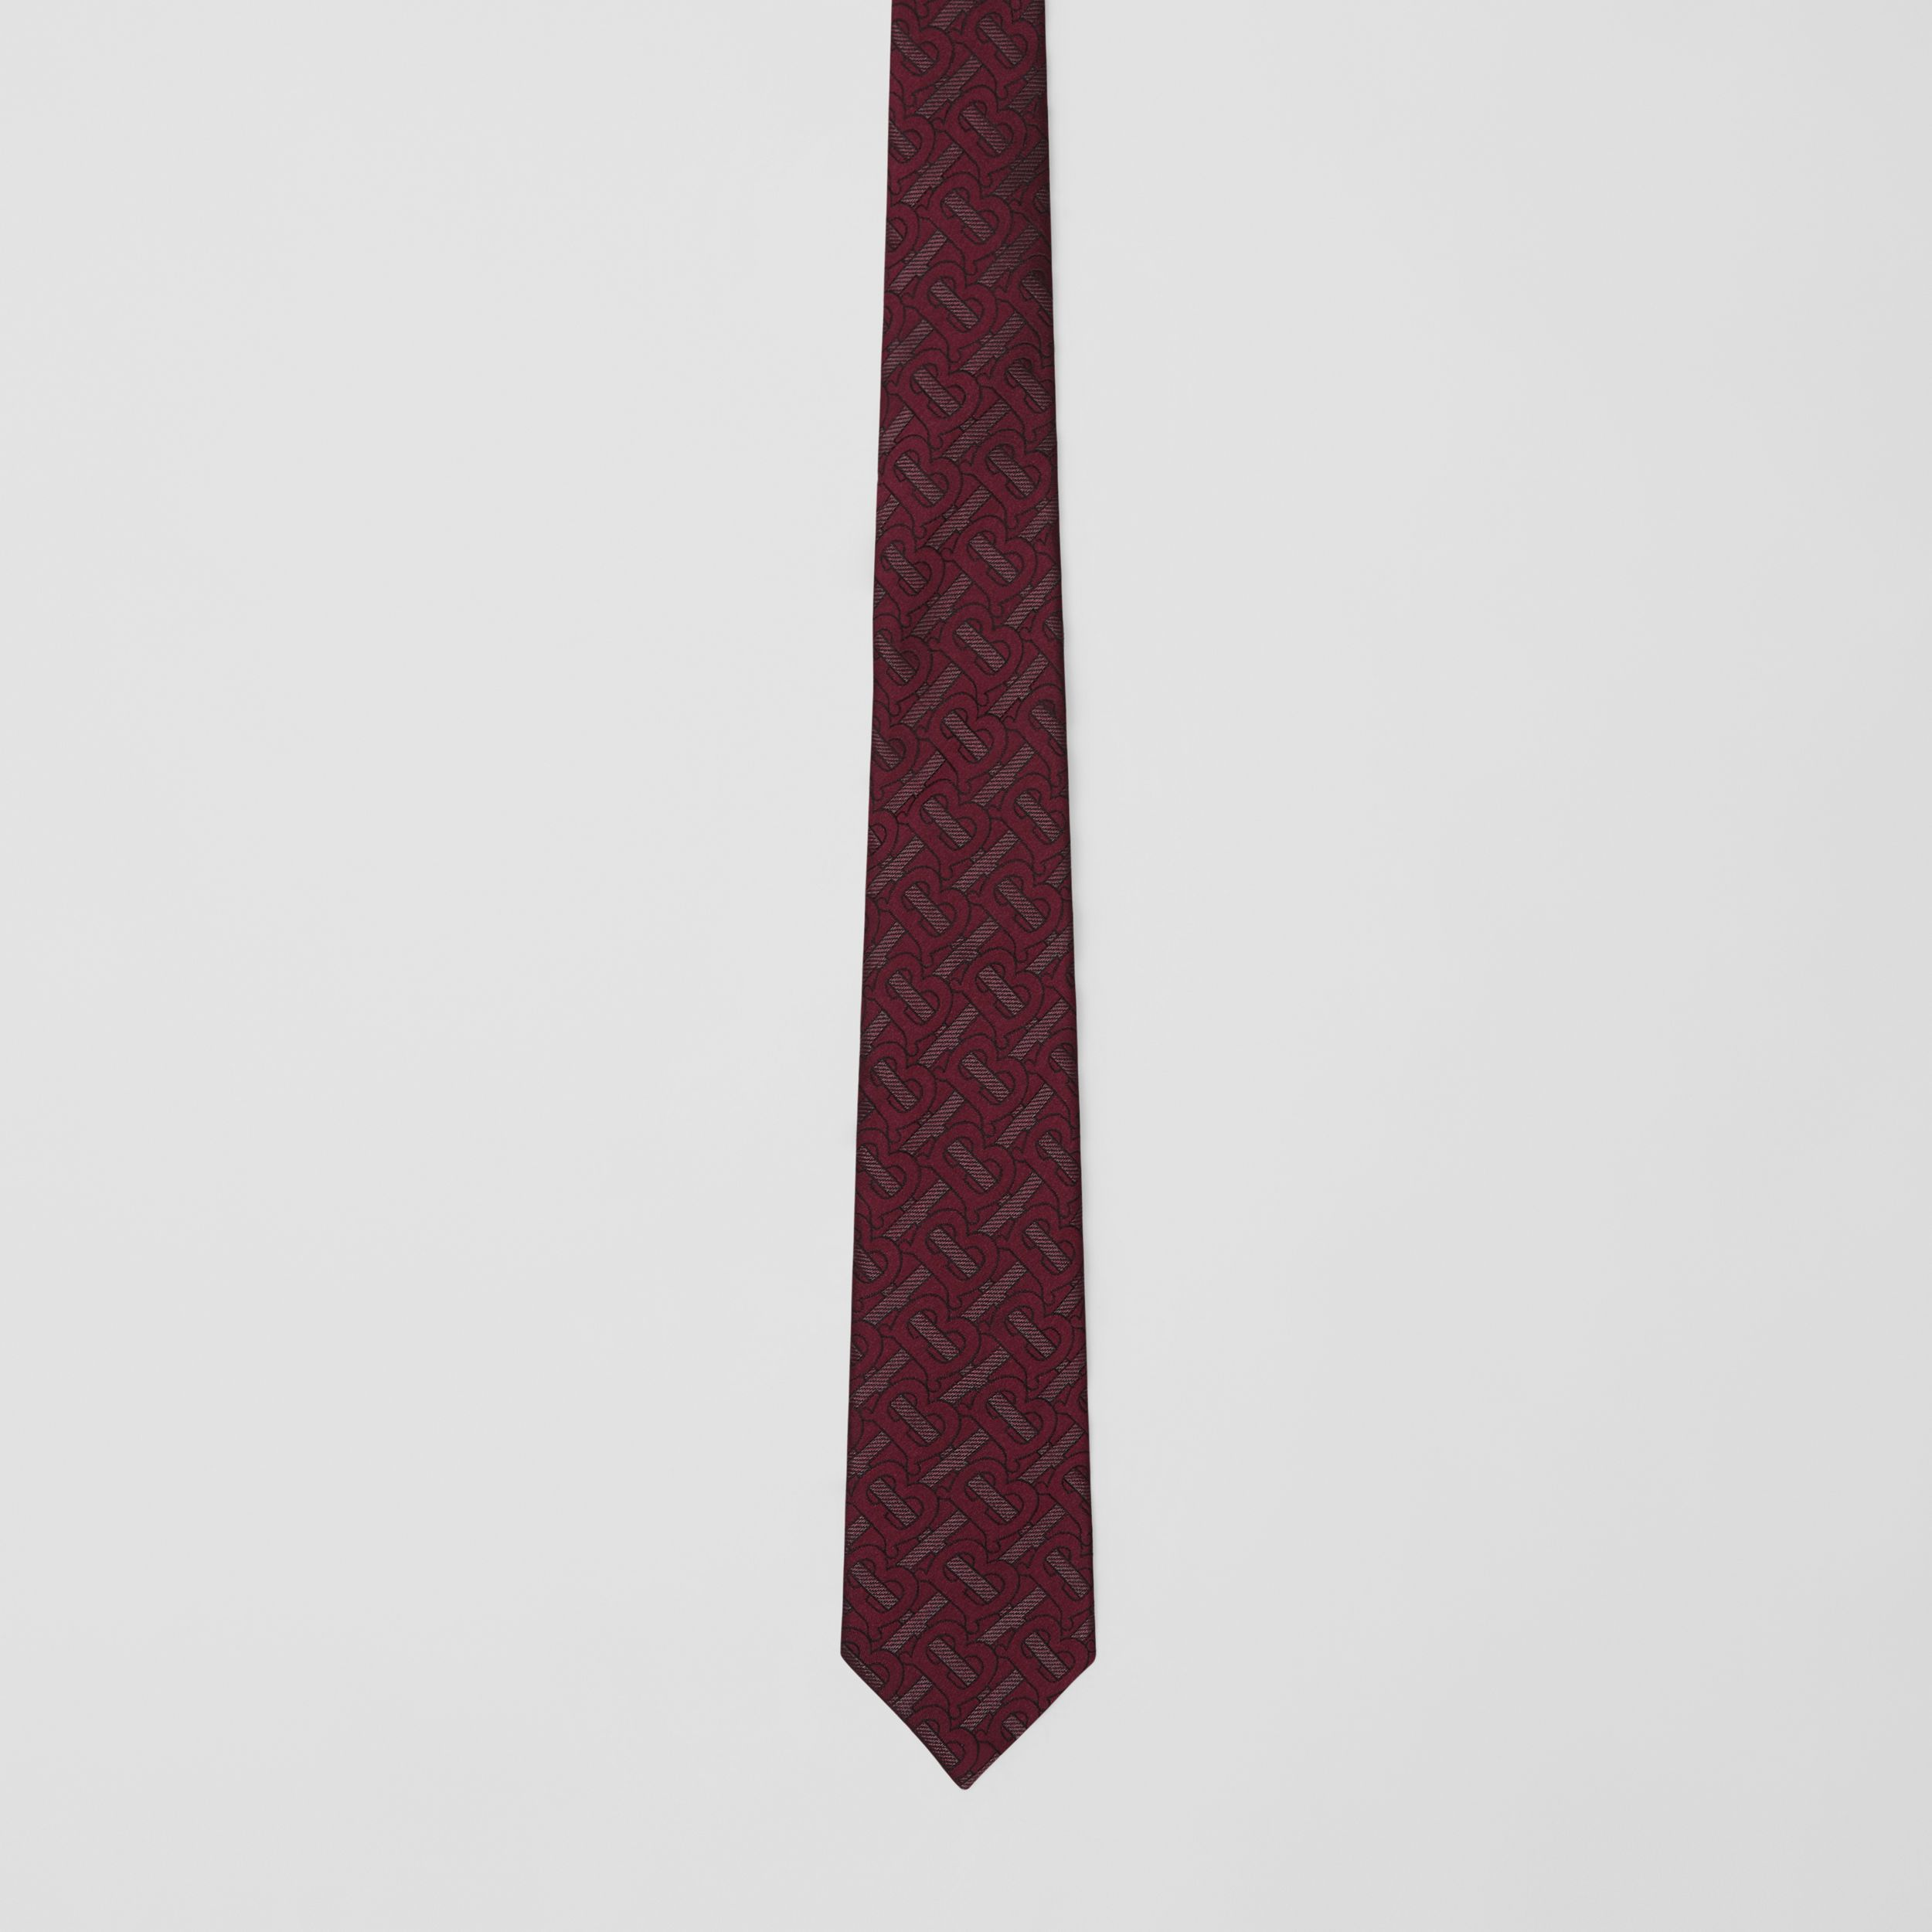 Classic Cut Monogram Silk Blend Jacquard Tie in Burgundy - Men | Burberry Australia - 4